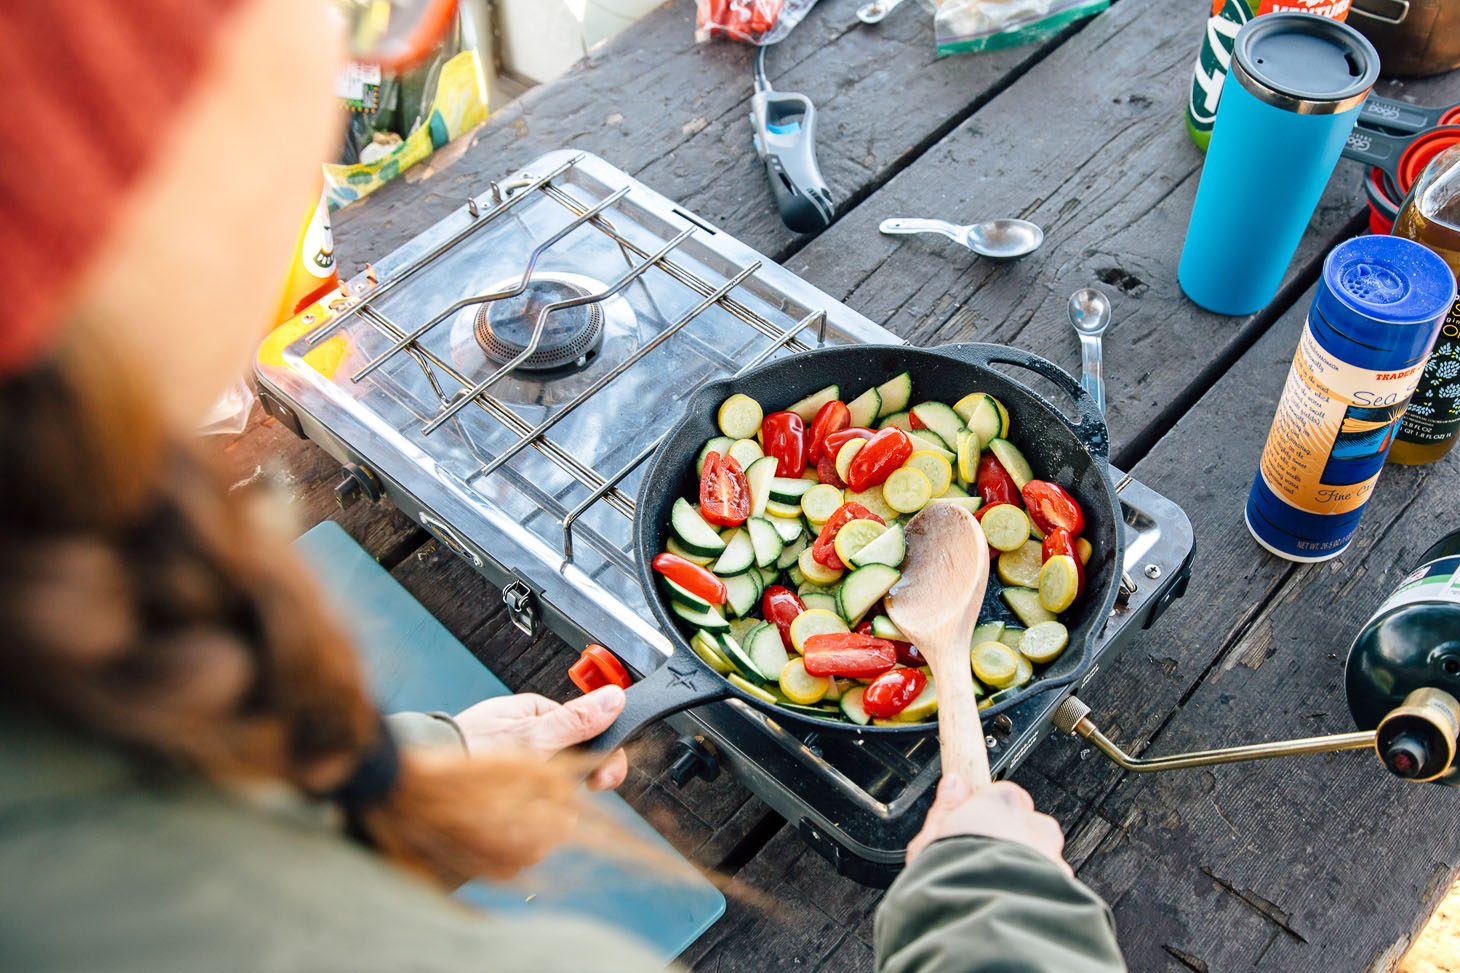 Sauteeing tomatoes, zucchini, and yellow summer squash in a cast iron skillet on a camping stove.